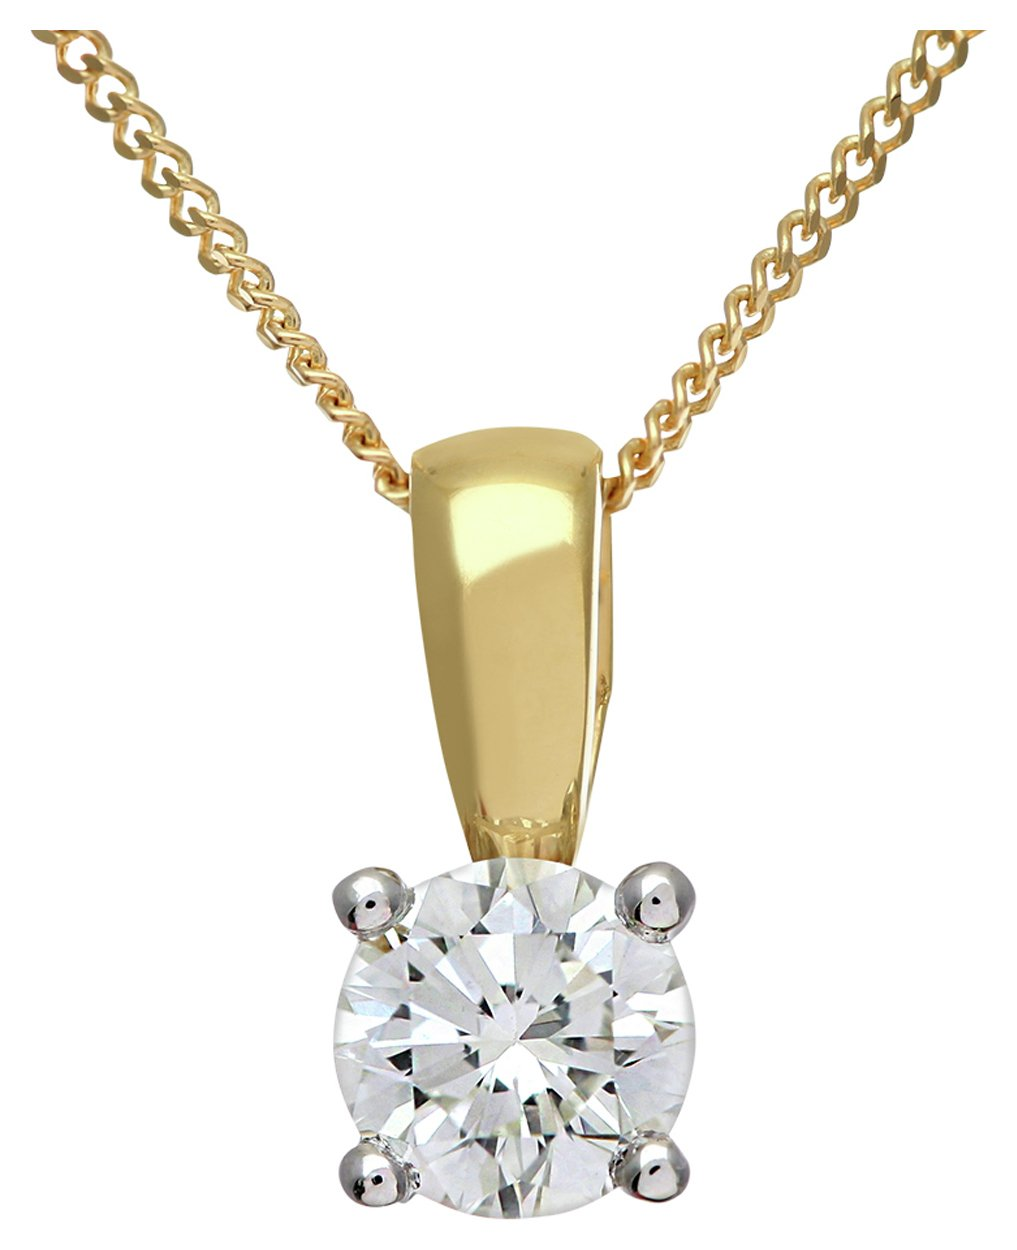 Image of Everlasting Love 18ct Gold 0.50ct Circle Diamond Pendant Necklace.